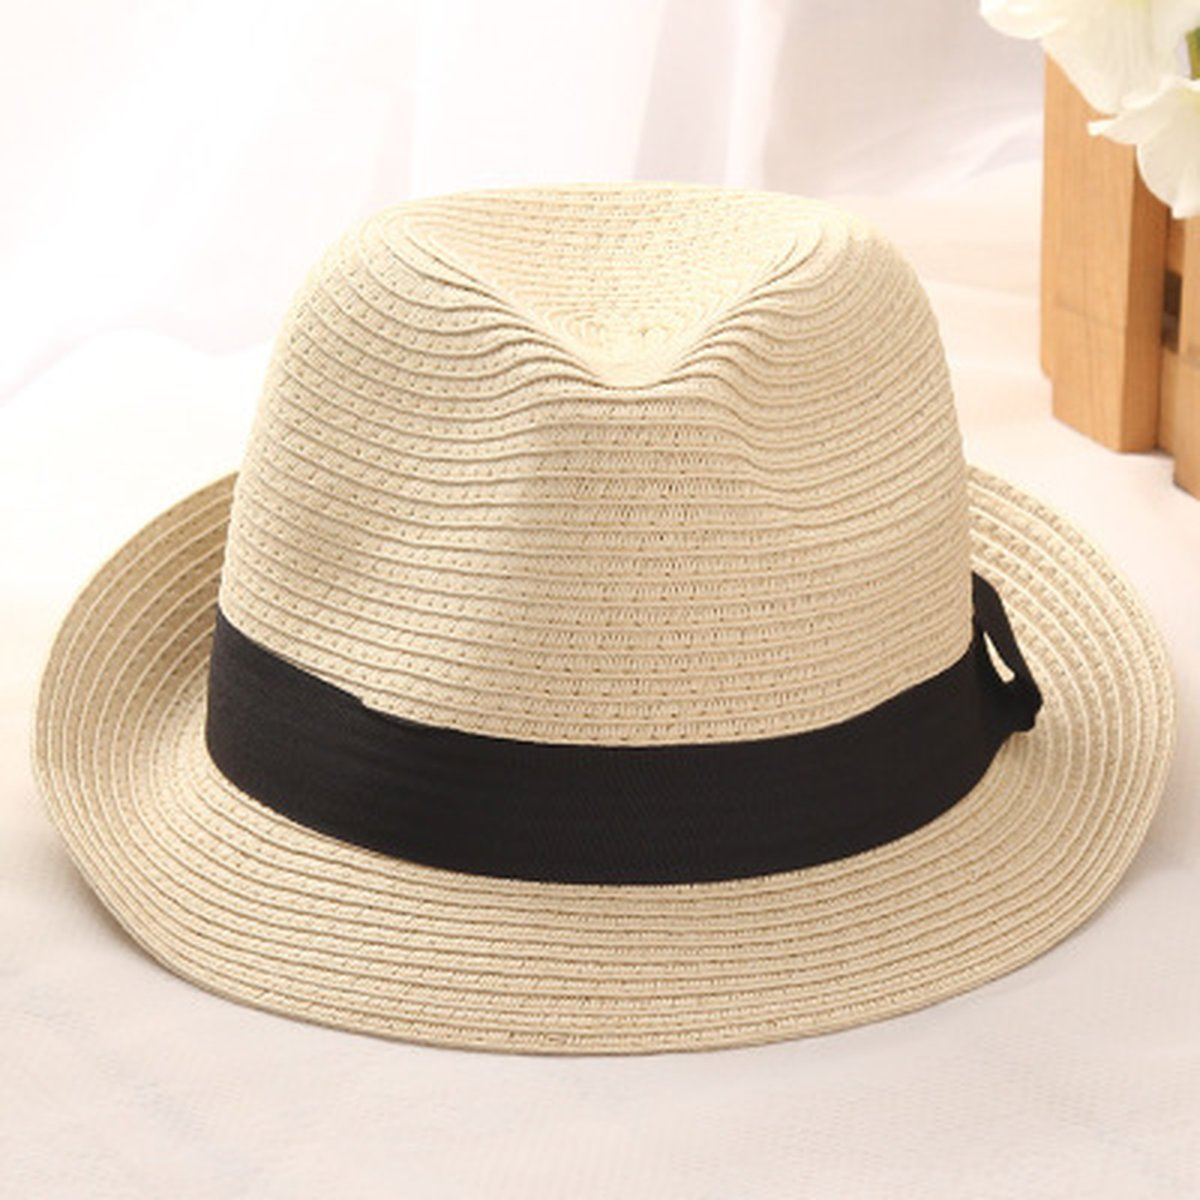 Sun Hat for Women Men's Jazz Panama Soft Cap Feedoras Summer Beach Tropical Hat by AOBRITON